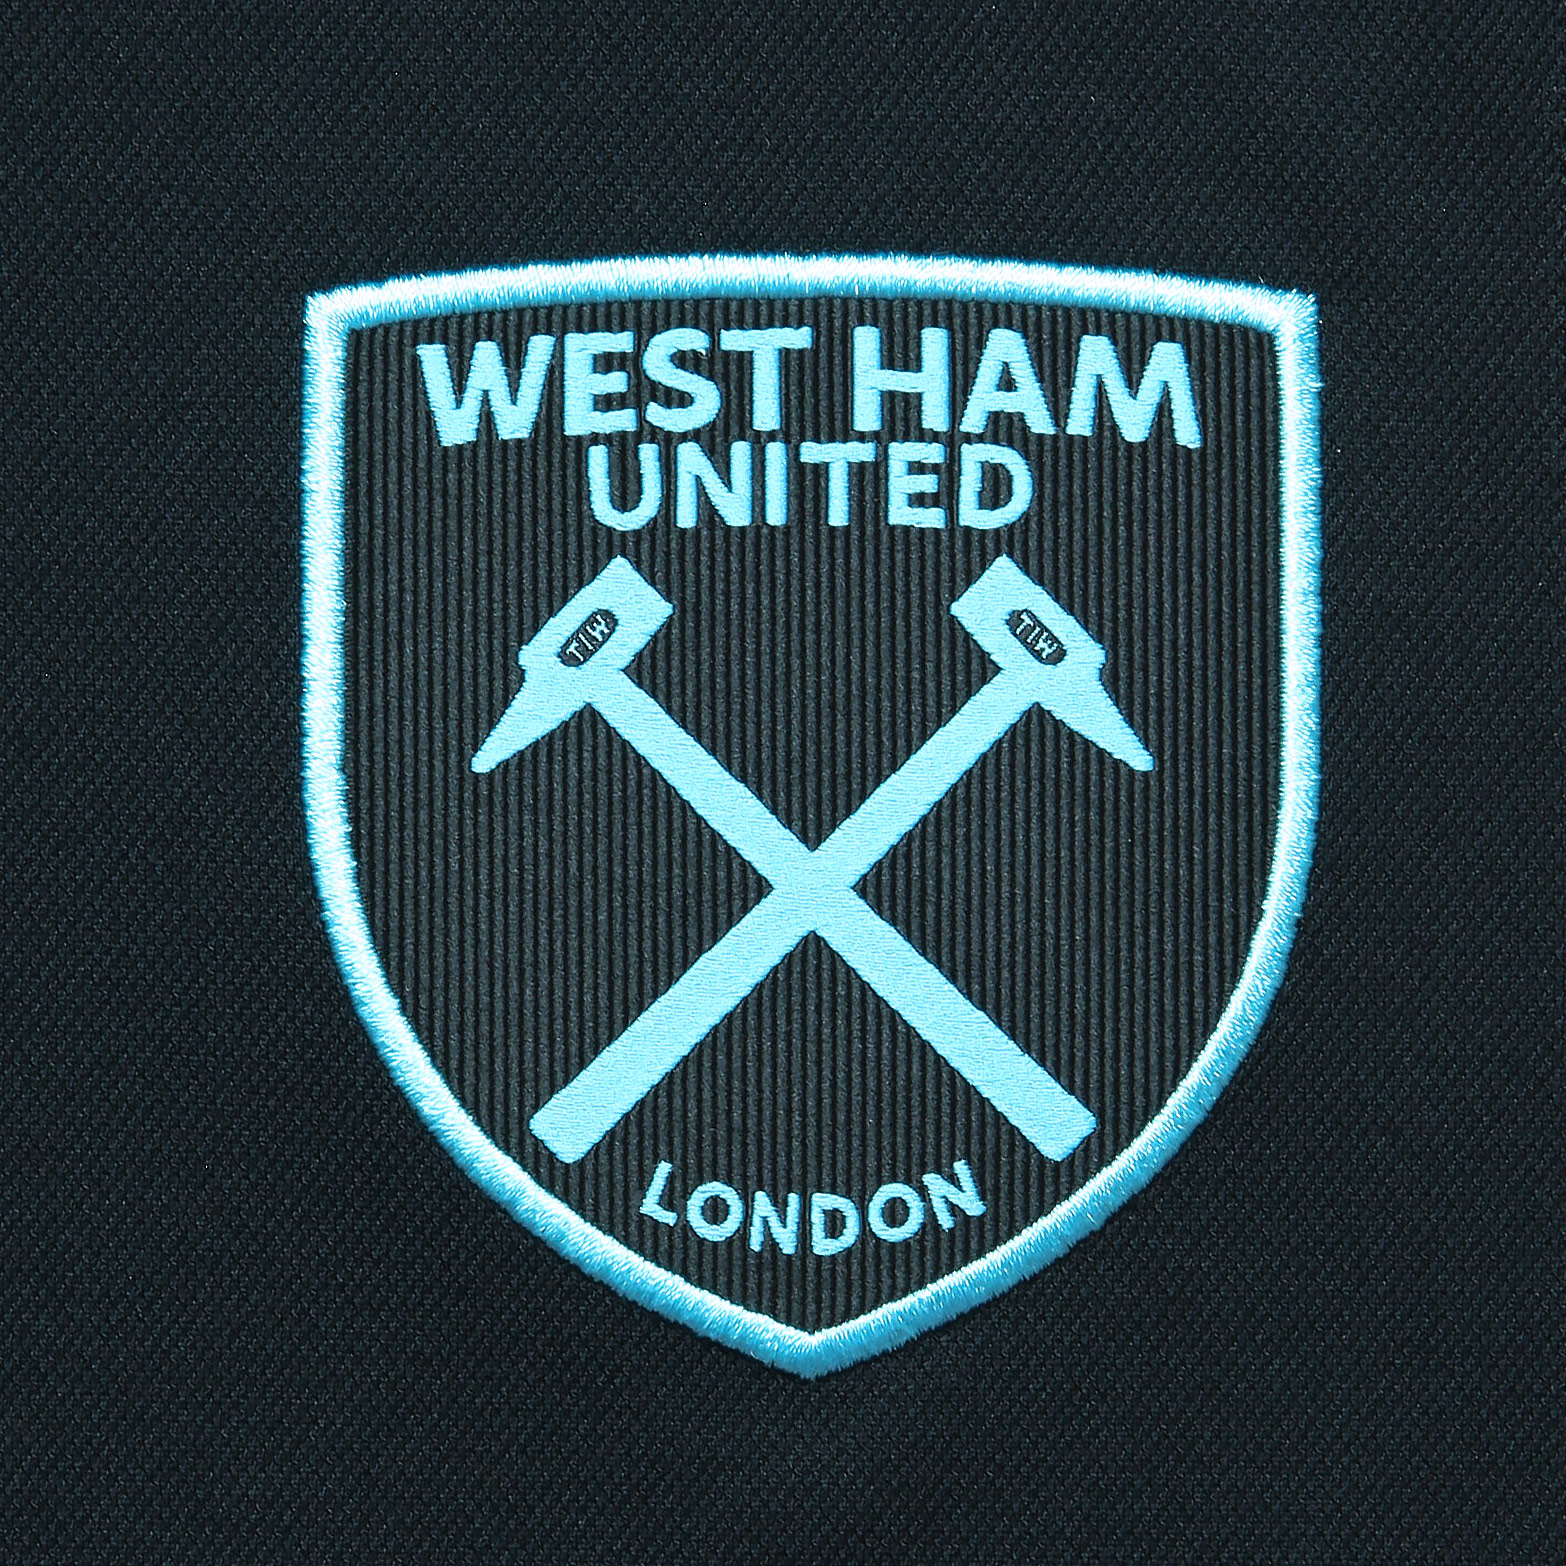 West Ham United 2017-18 Umbro Away Kit | 17/18 Kits ...